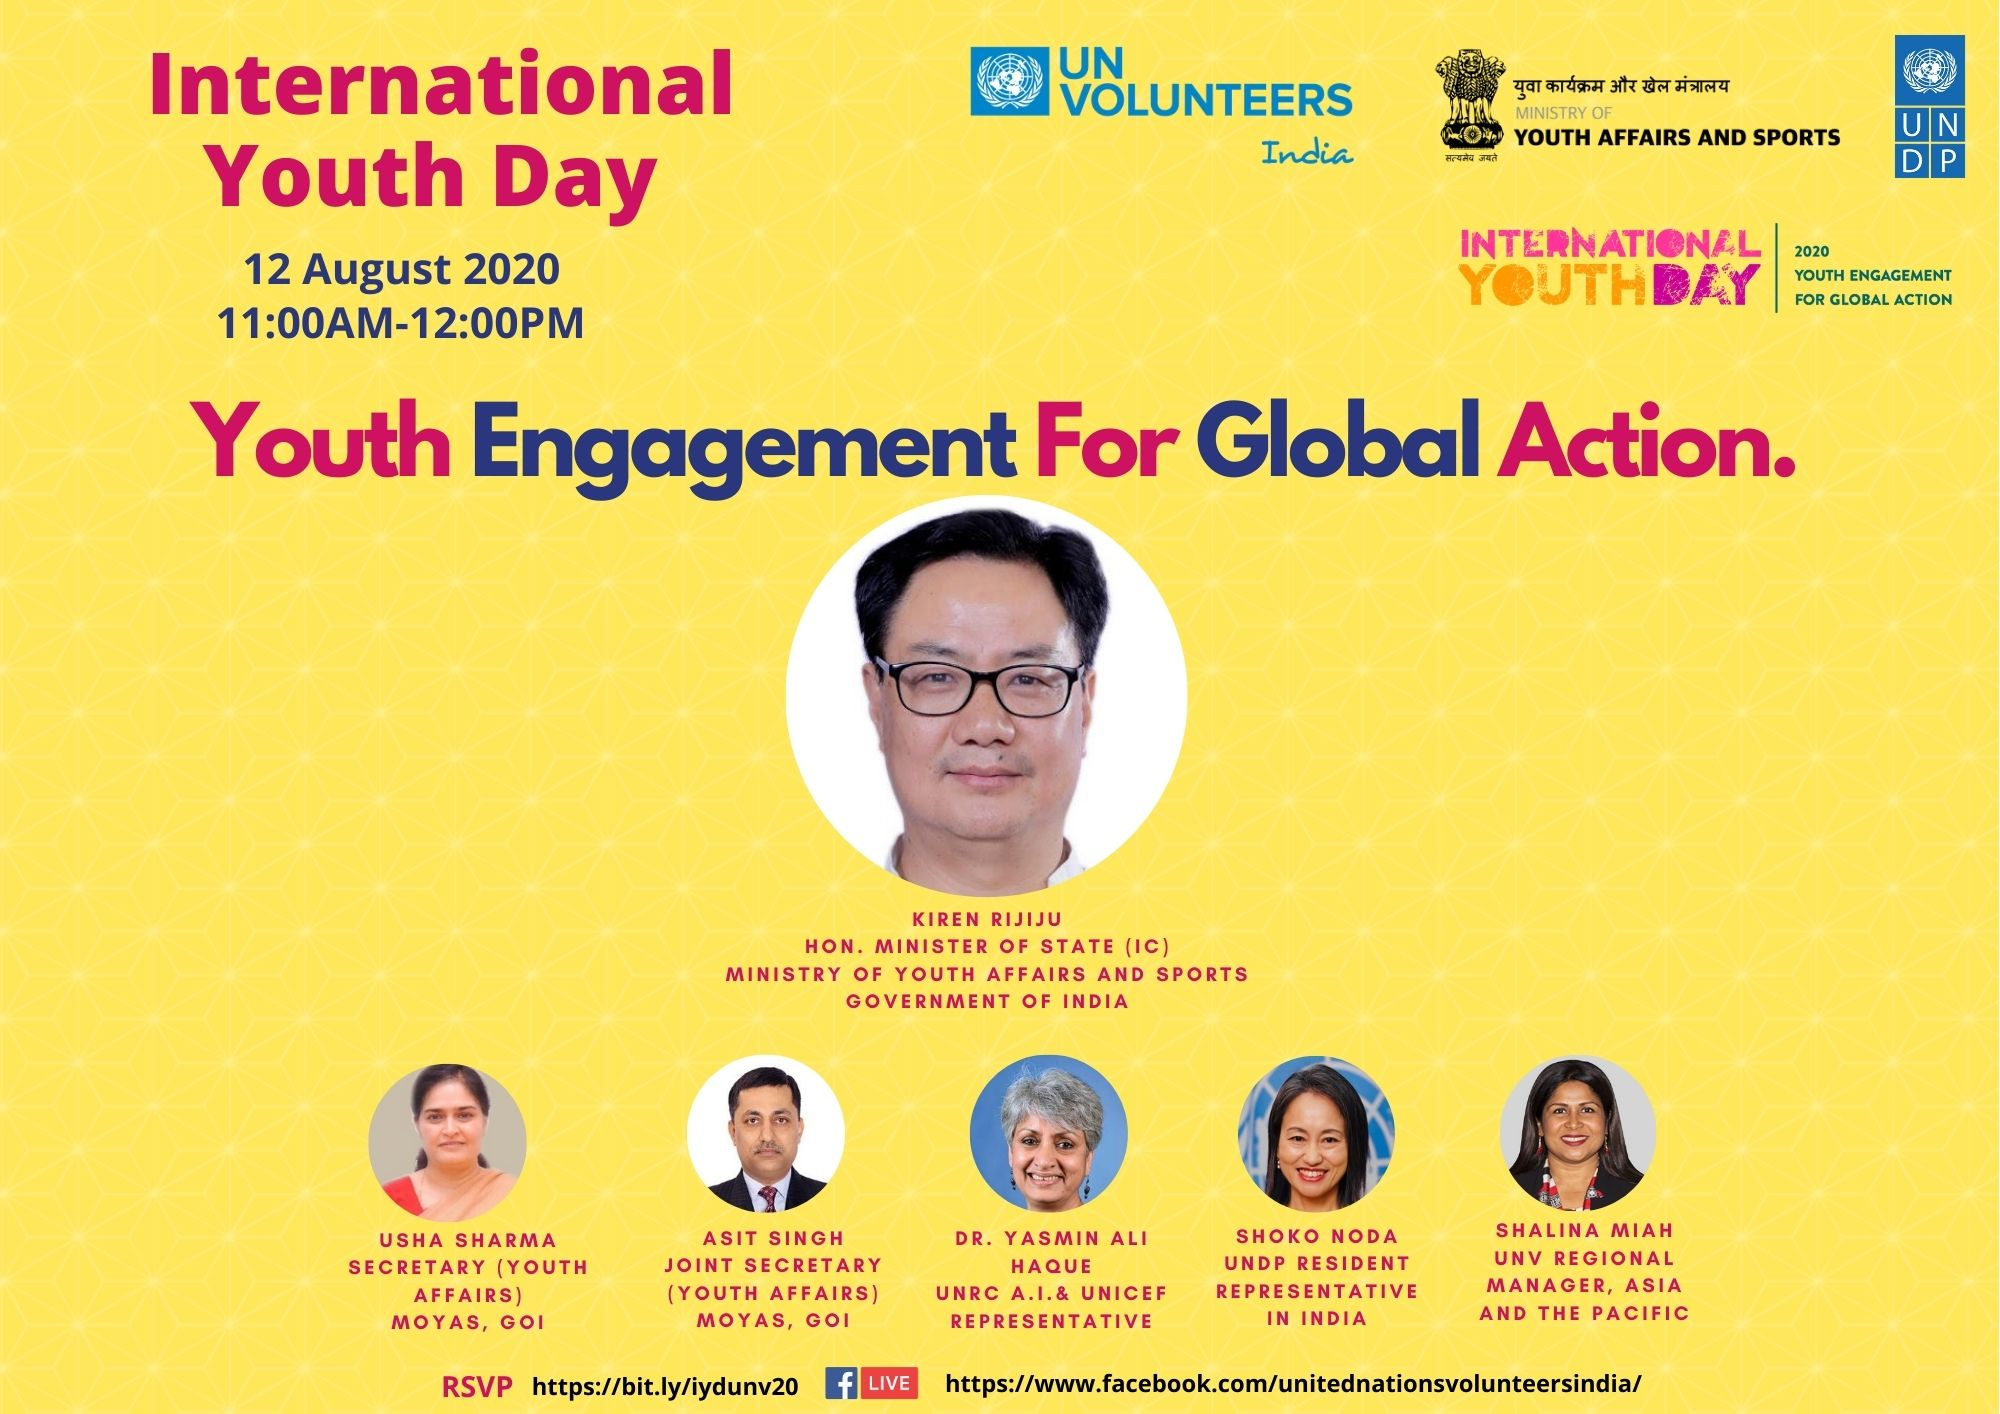 Youth Engagement - UNV India